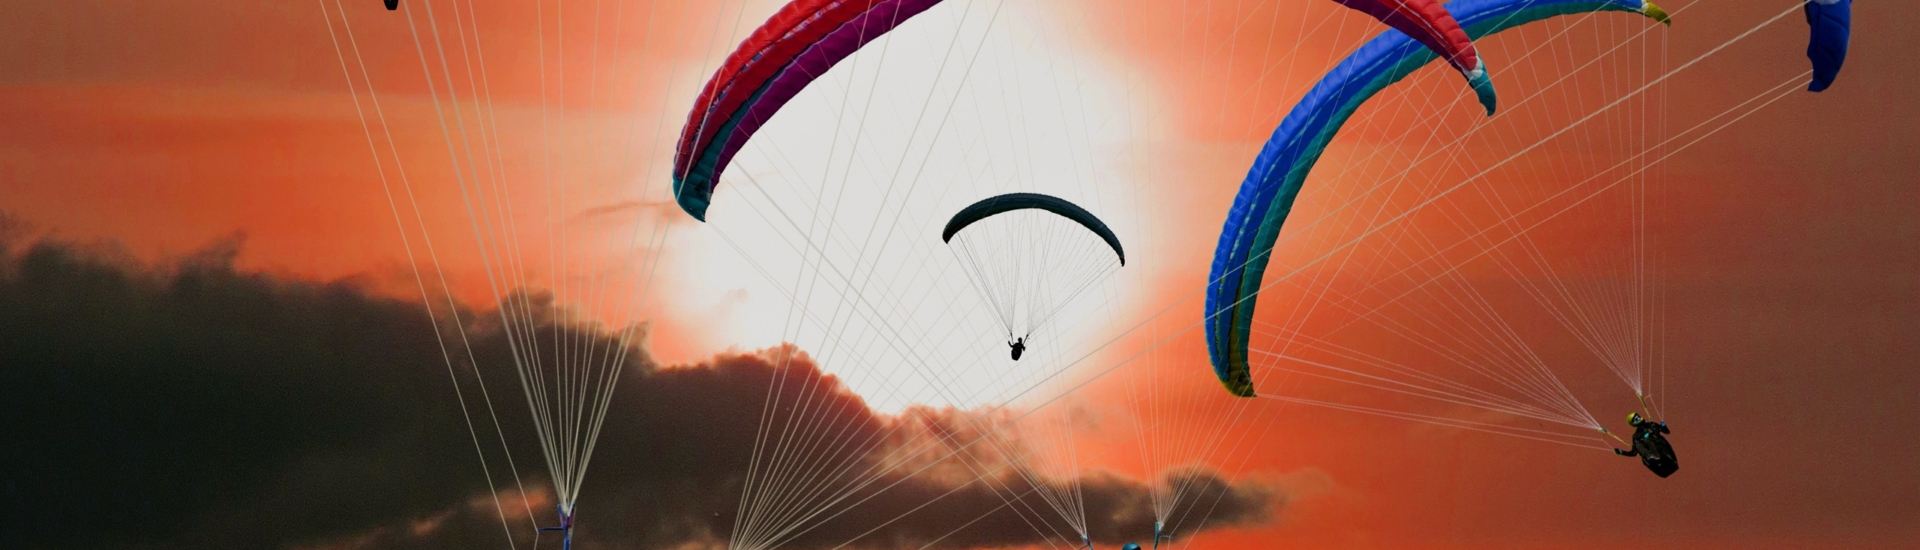 paragliders-2560×1440